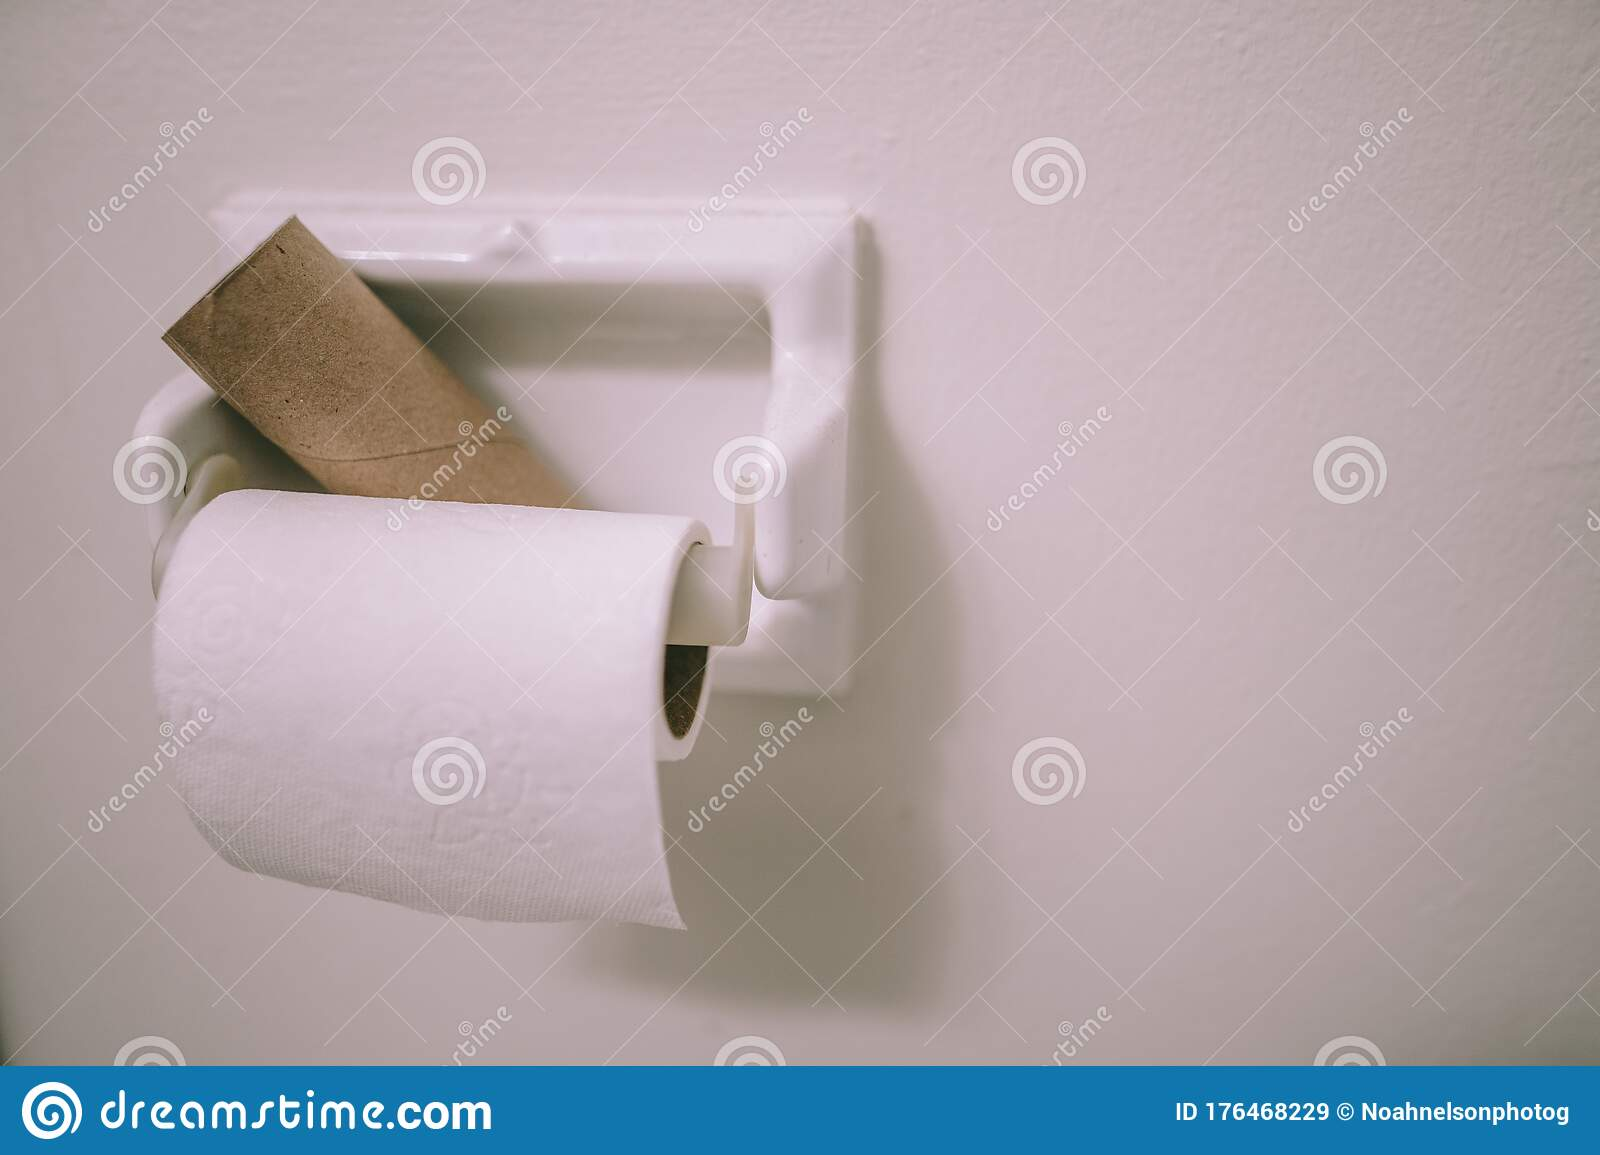 Empty Toilet Paper Roll Shortage Stock Image Image Of Shortage Cleanliness 176468229